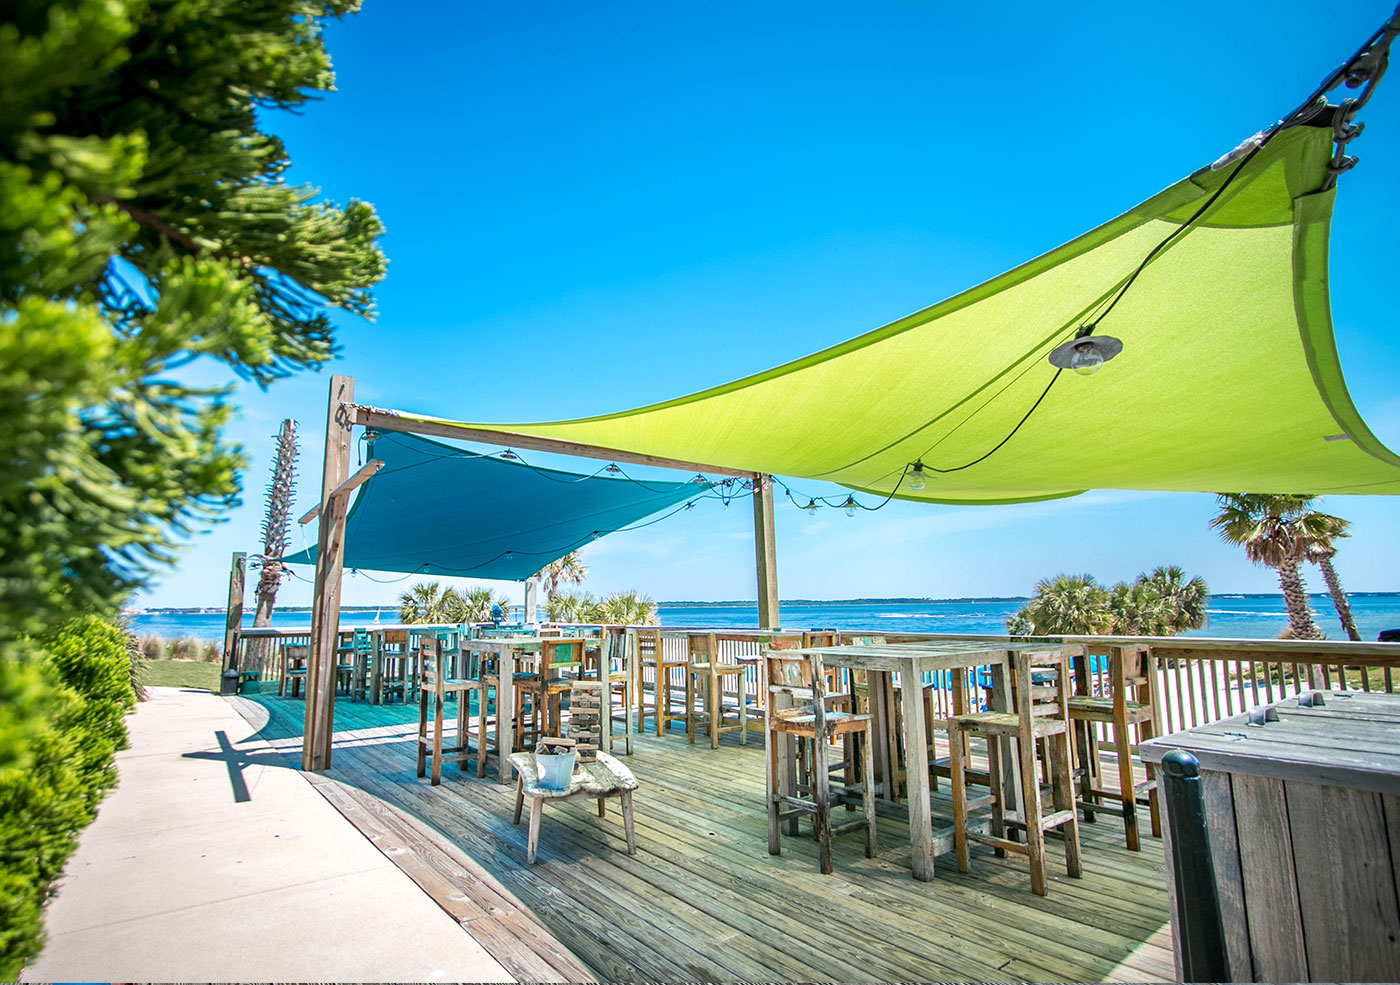 Restaurant pensacola beach fl red fish blue fish home for Fishing jobs in florida